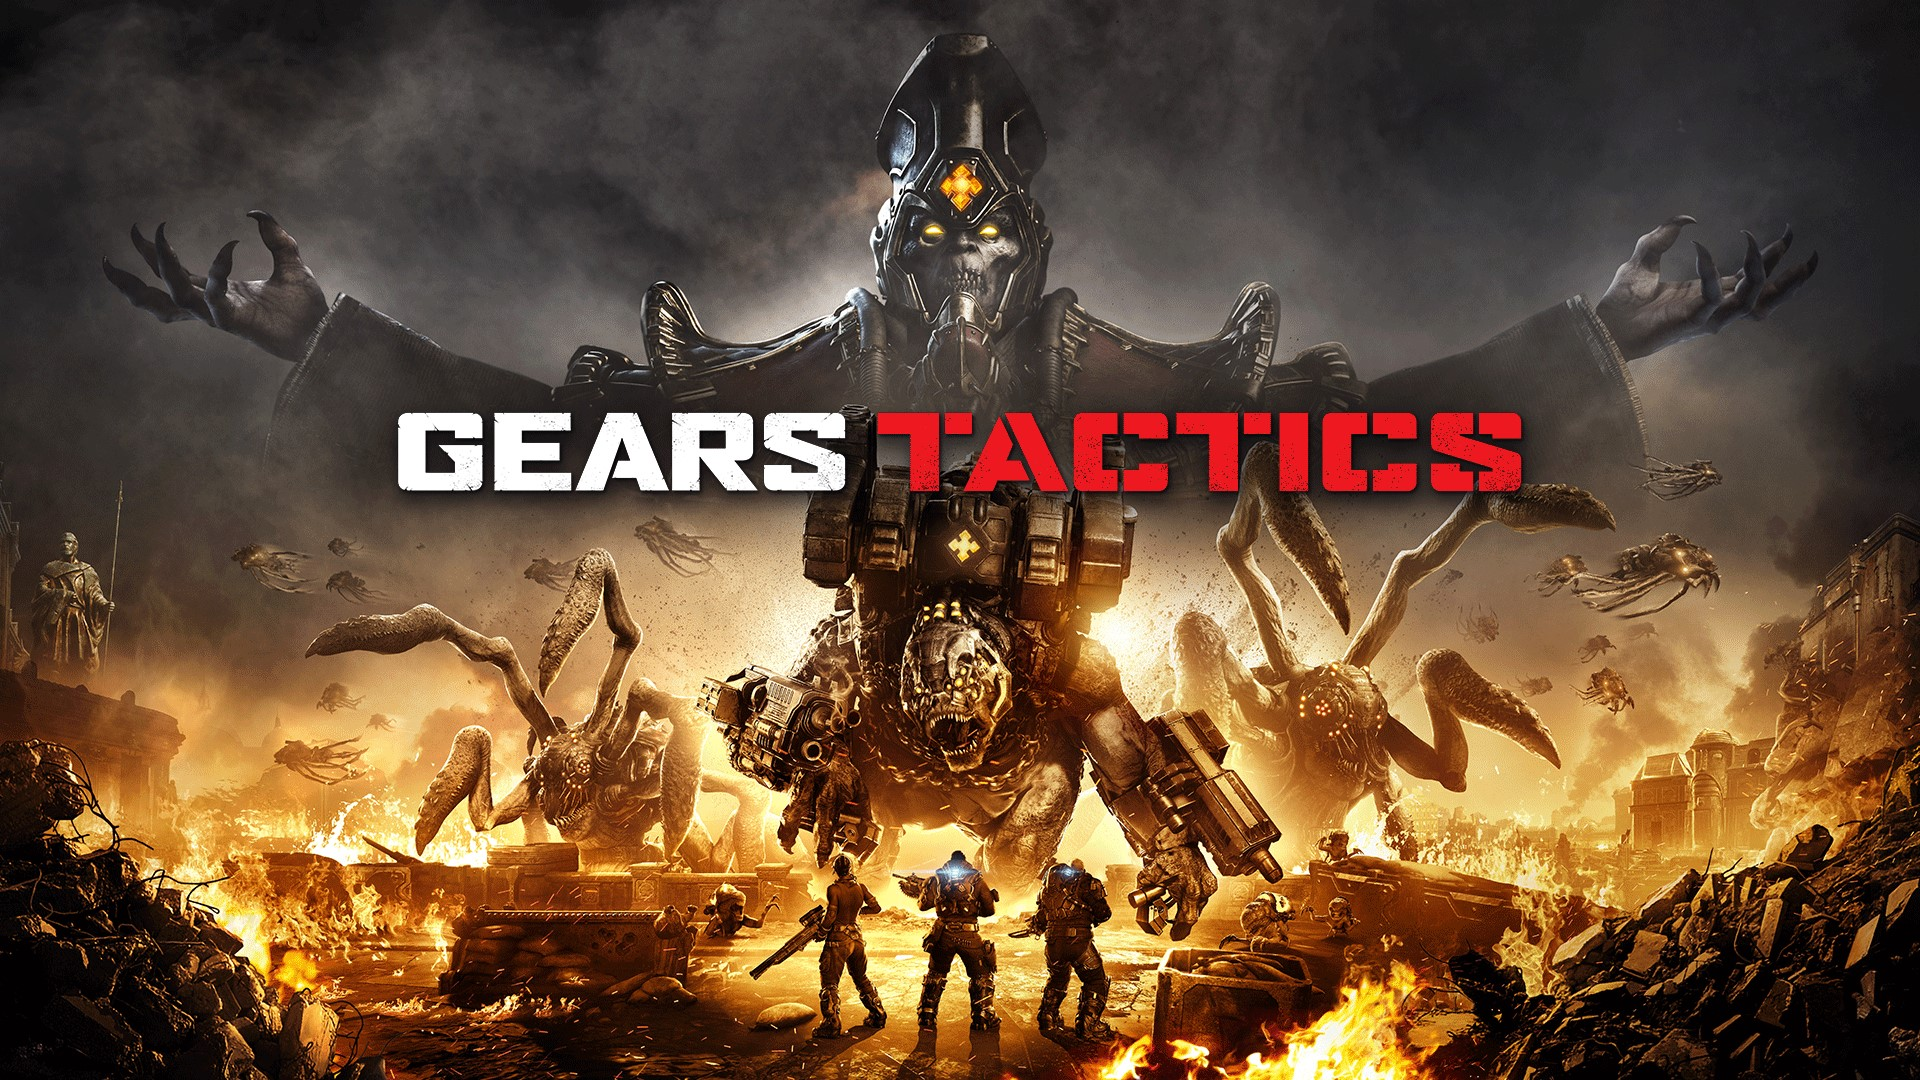 Gears Tactics Launches on PC, Steam, and Windows 10